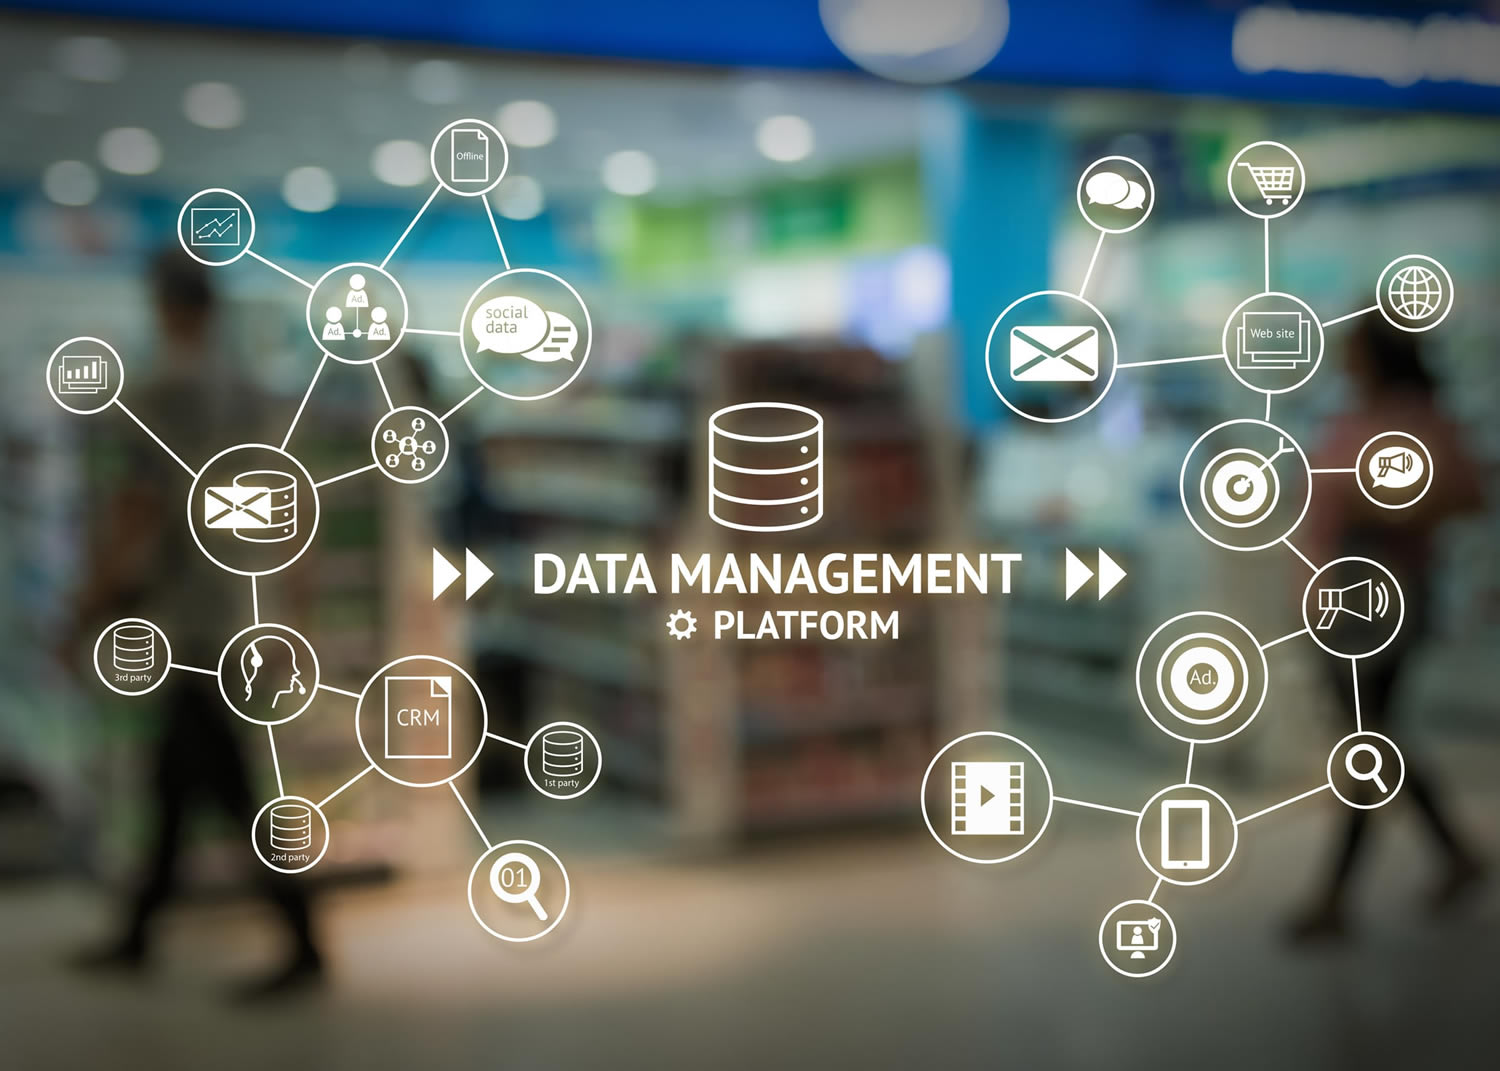 naem-research-reports-2017-approaches-to-ehss-data-management-enforcing-corporate-standards-through-centralized-data-management-1560x2010